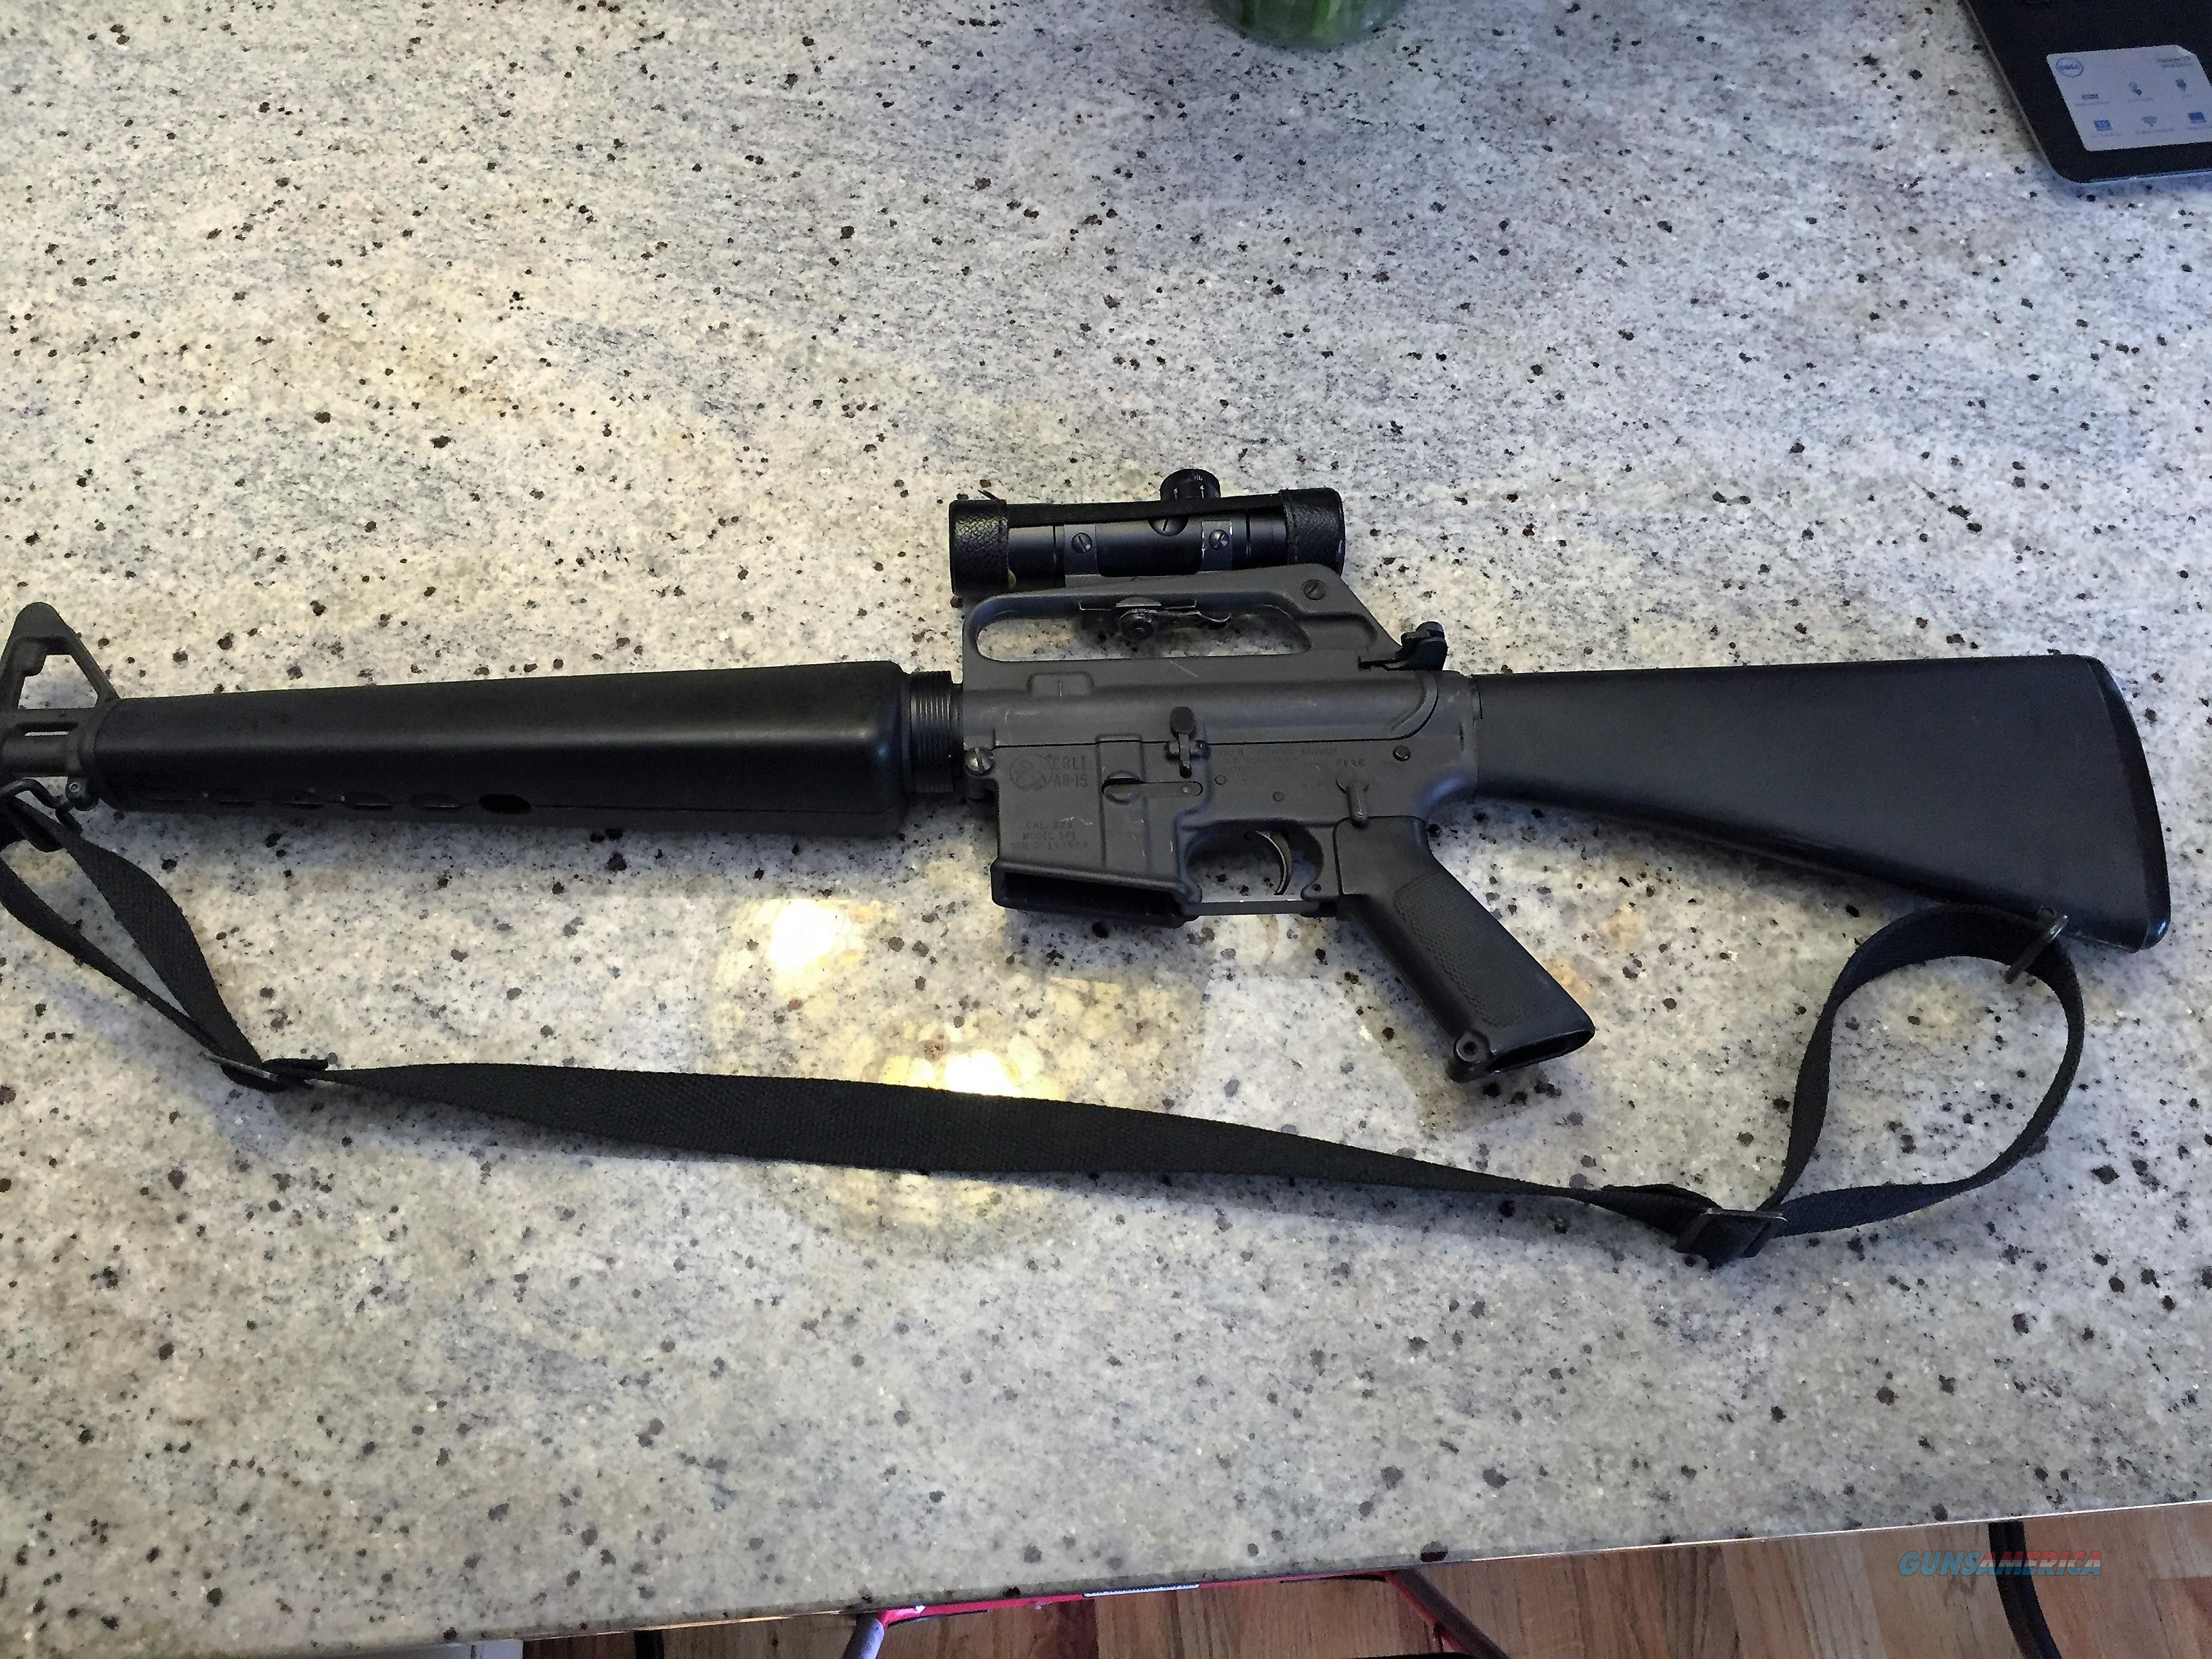 COLT  SP1 5.56 AR15 WITH COLT 3X20 SCOPE  Guns > Rifles > AR-15 Rifles - Small Manufacturers > Complete Rifle